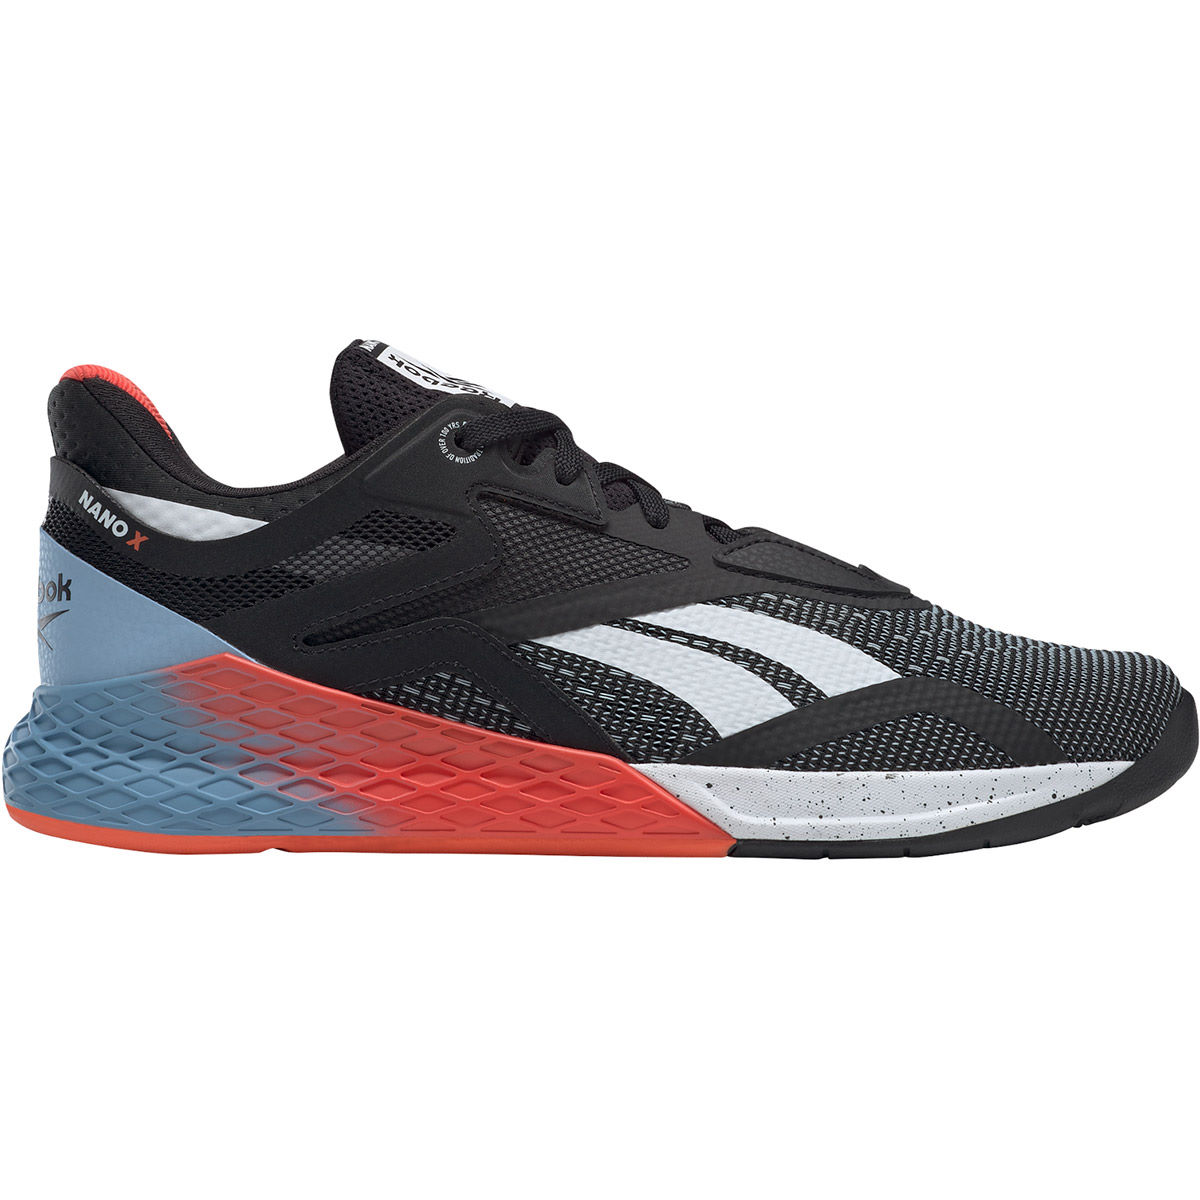 Reebok Reebok Nano X Gym Shoe   Fitness Shoes